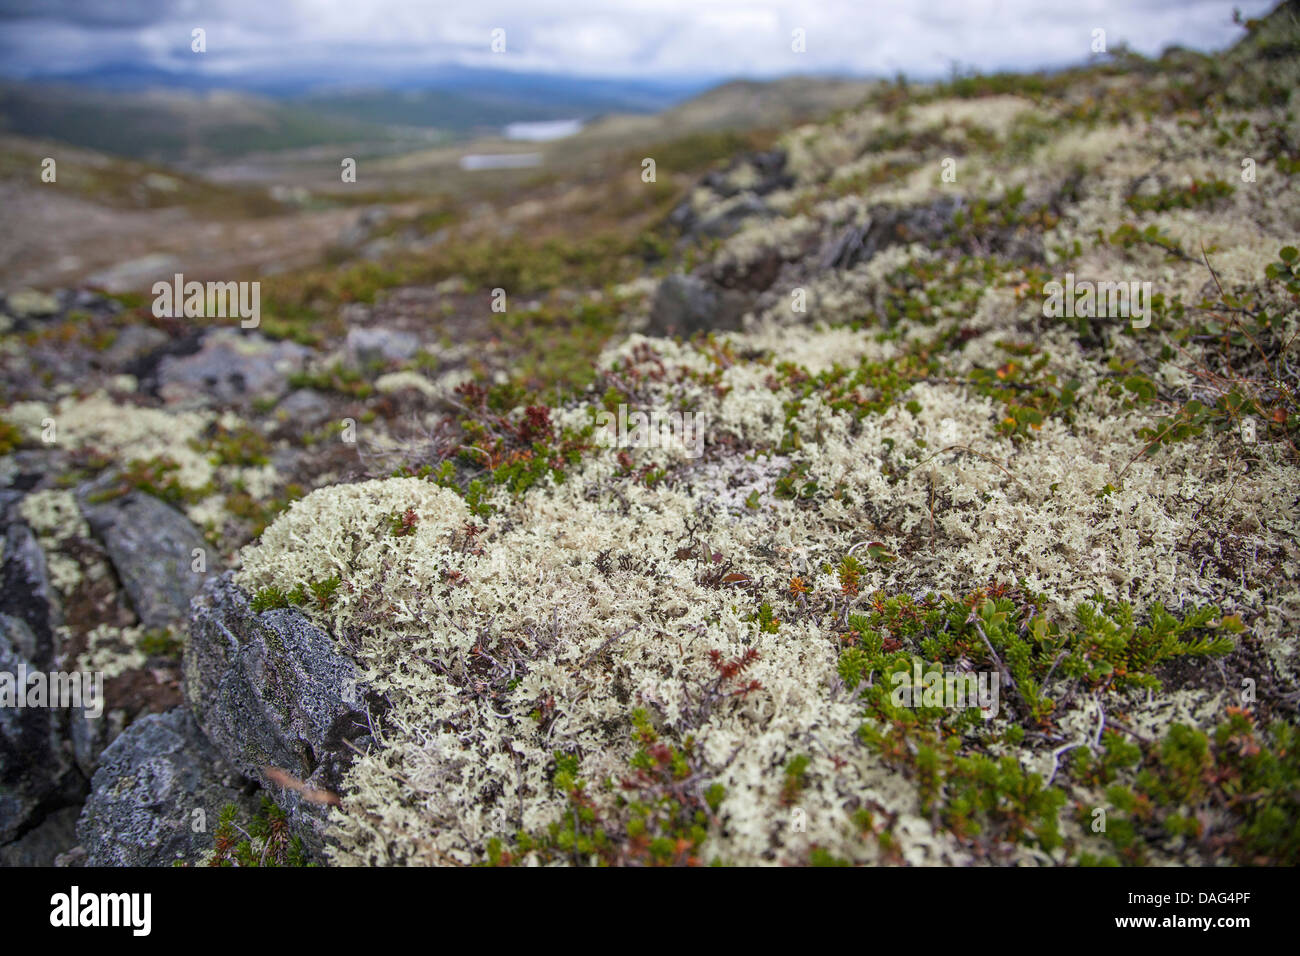 cup lichen (Cladonia portentosa), between crowberries, Norway, Dovrefjell Sunndalsfjella National Park - Stock Image